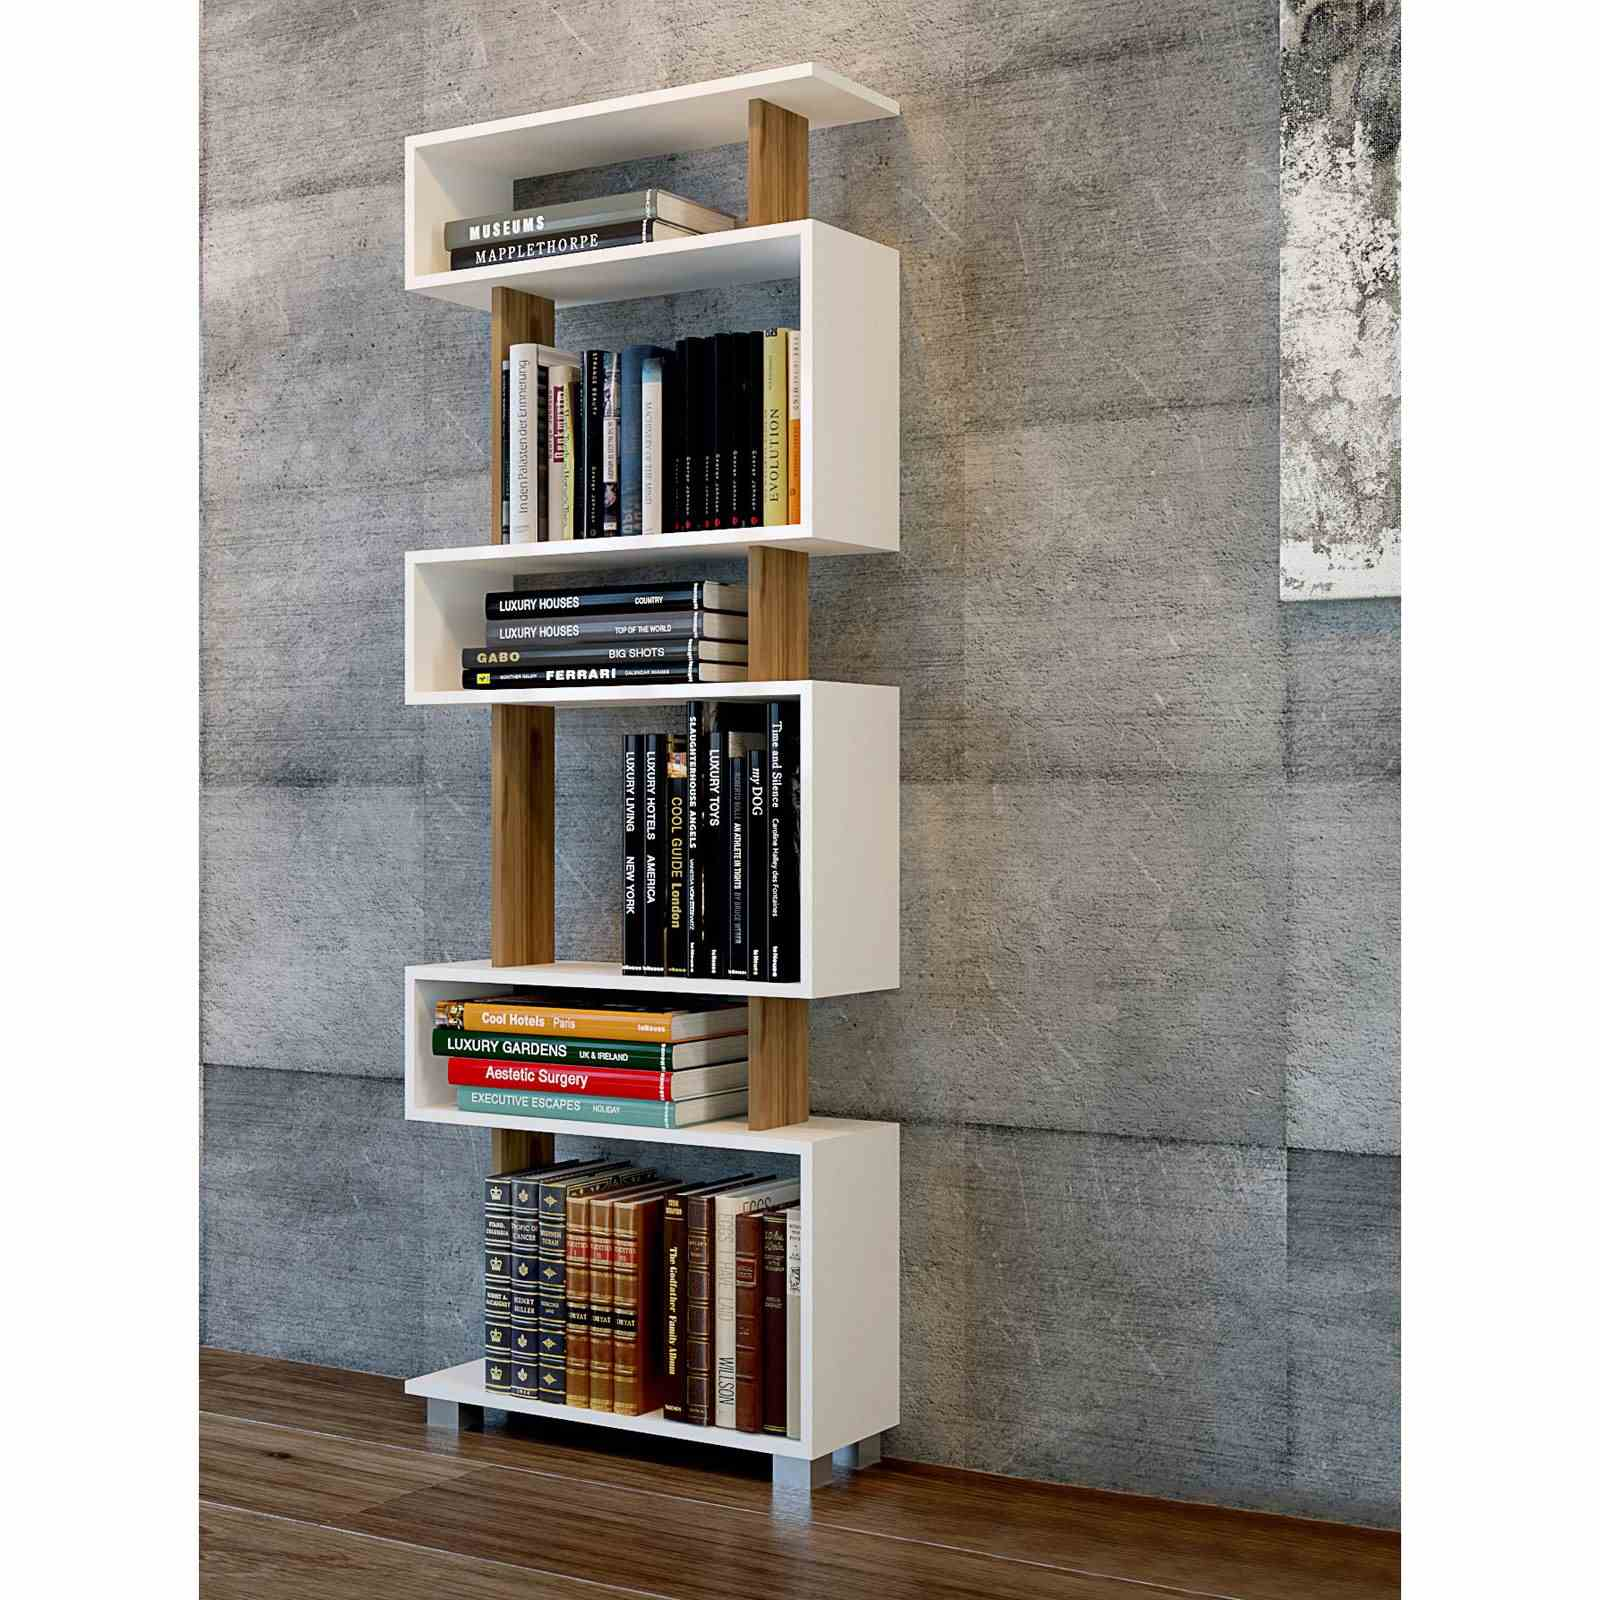 Wooden Art Meuble Bibliotheque Wooden Art